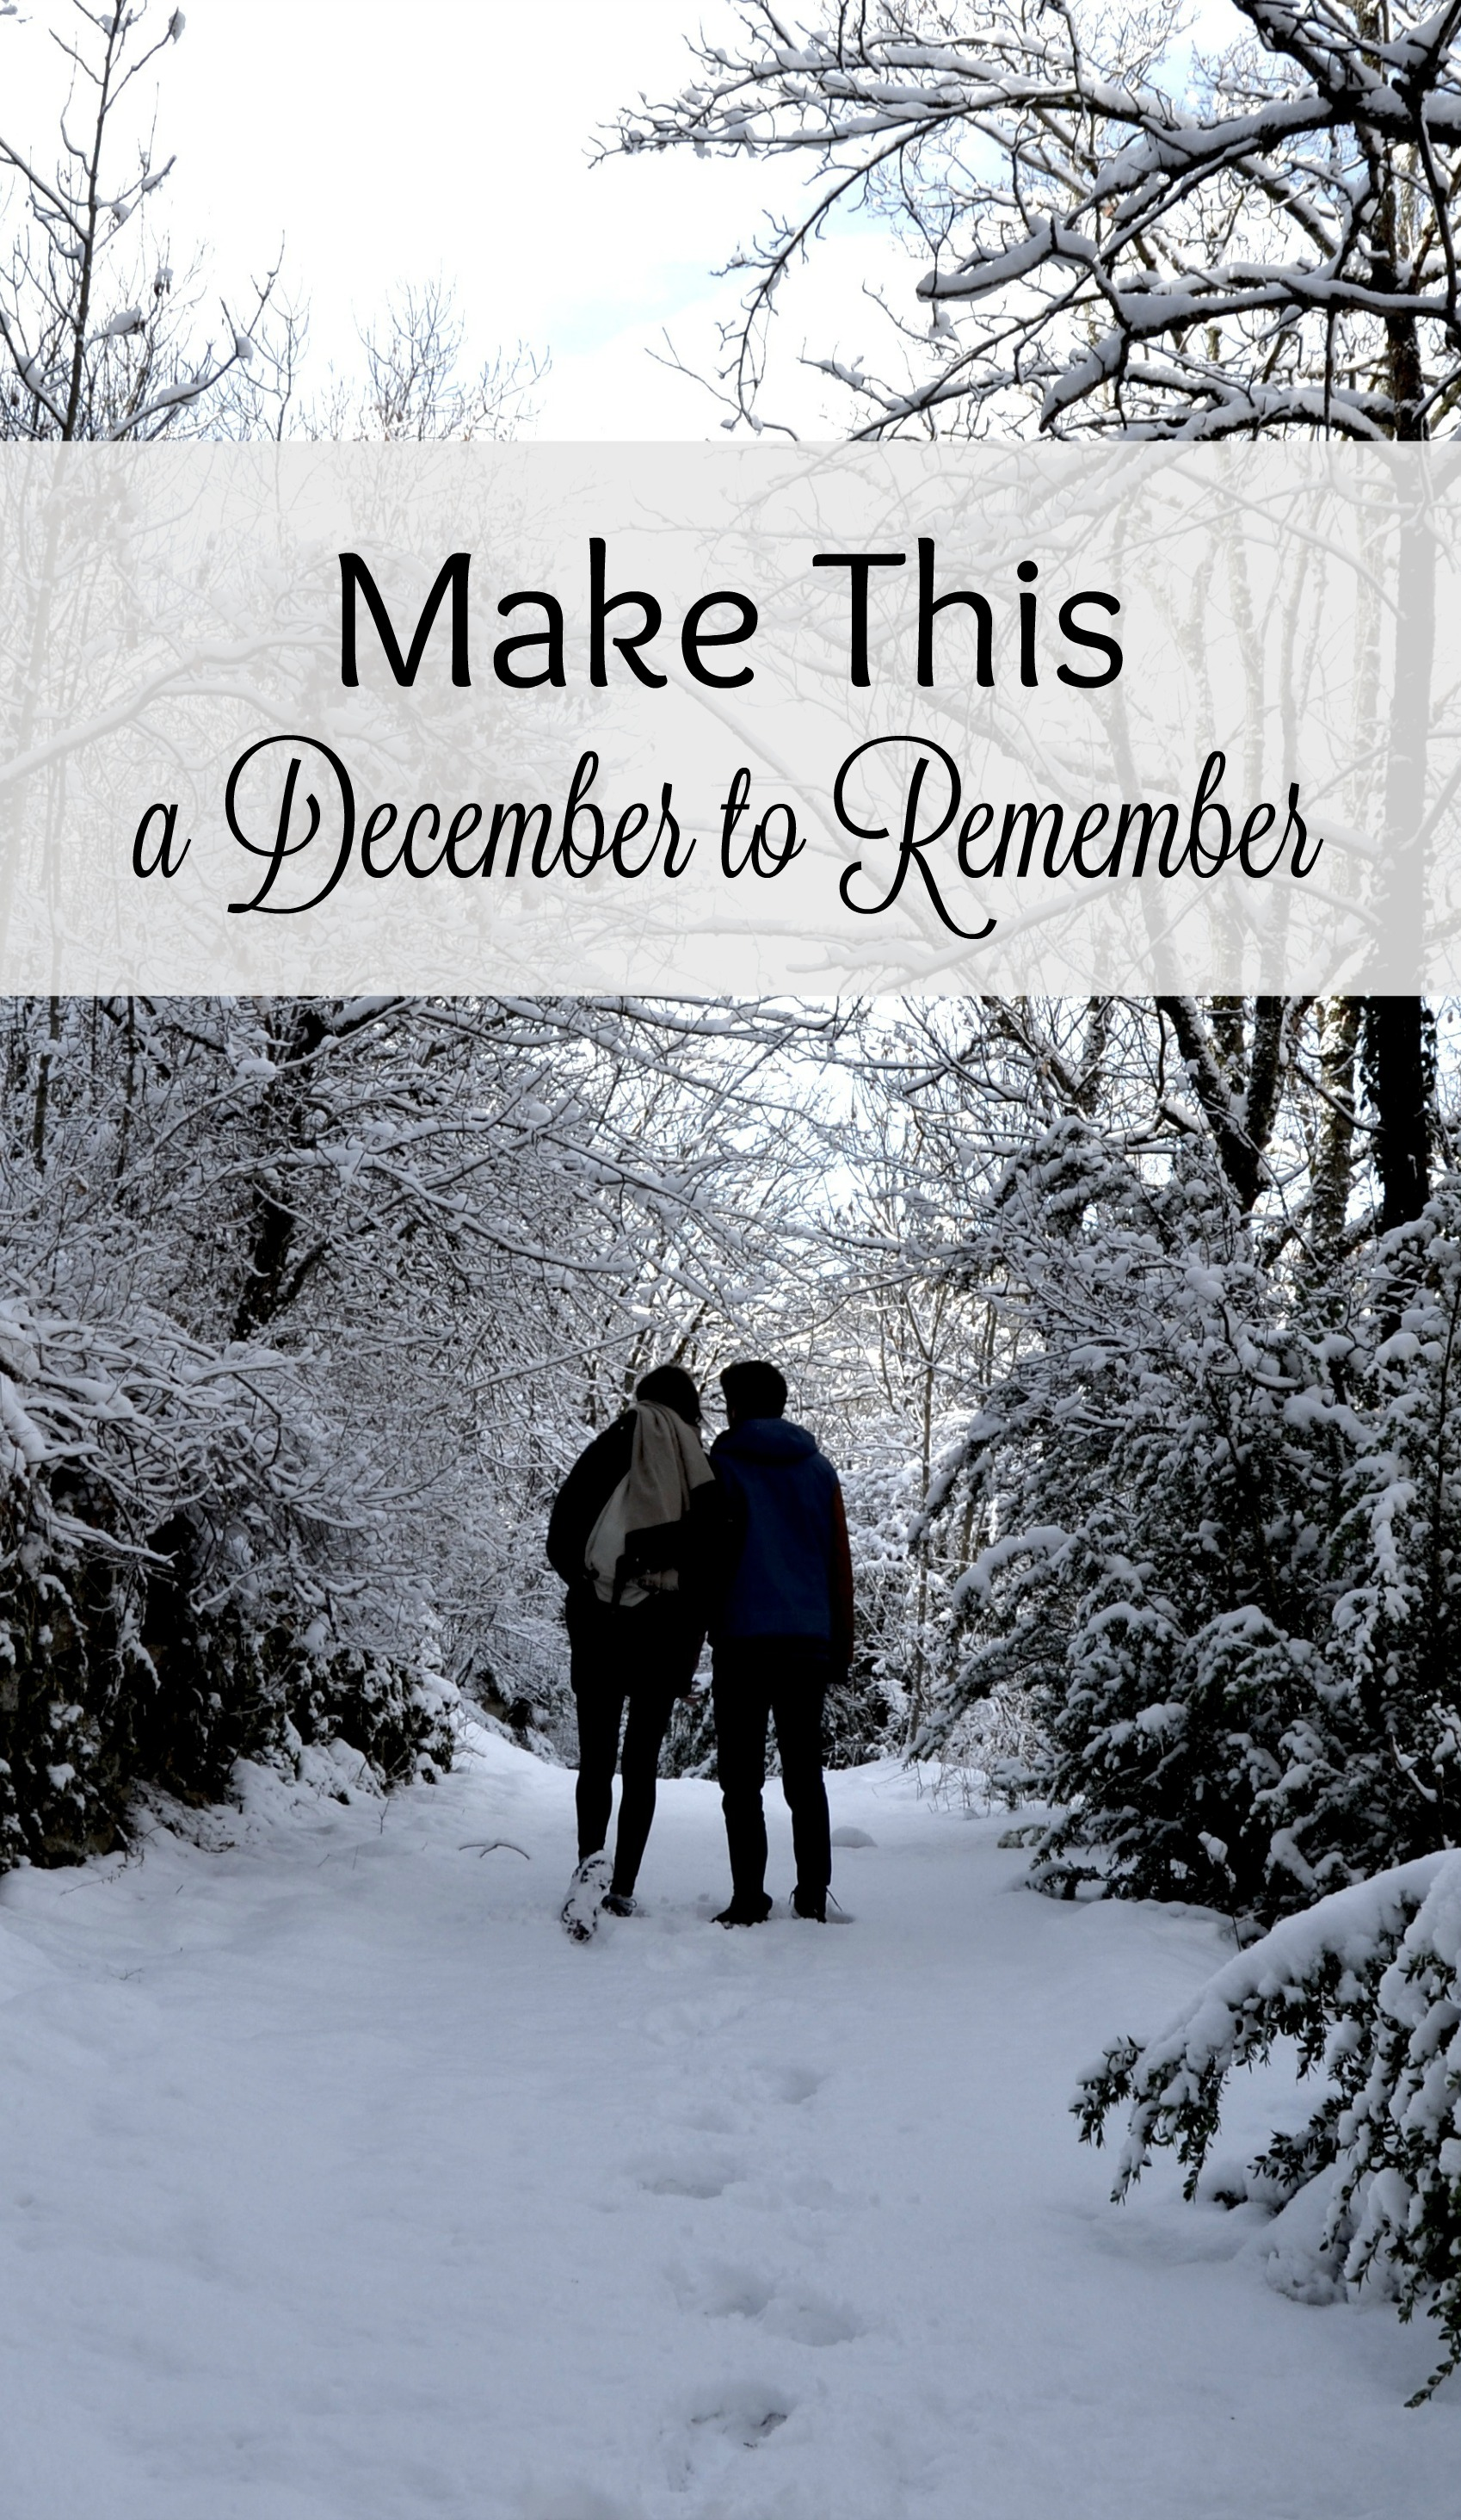 Make This a December to Remember